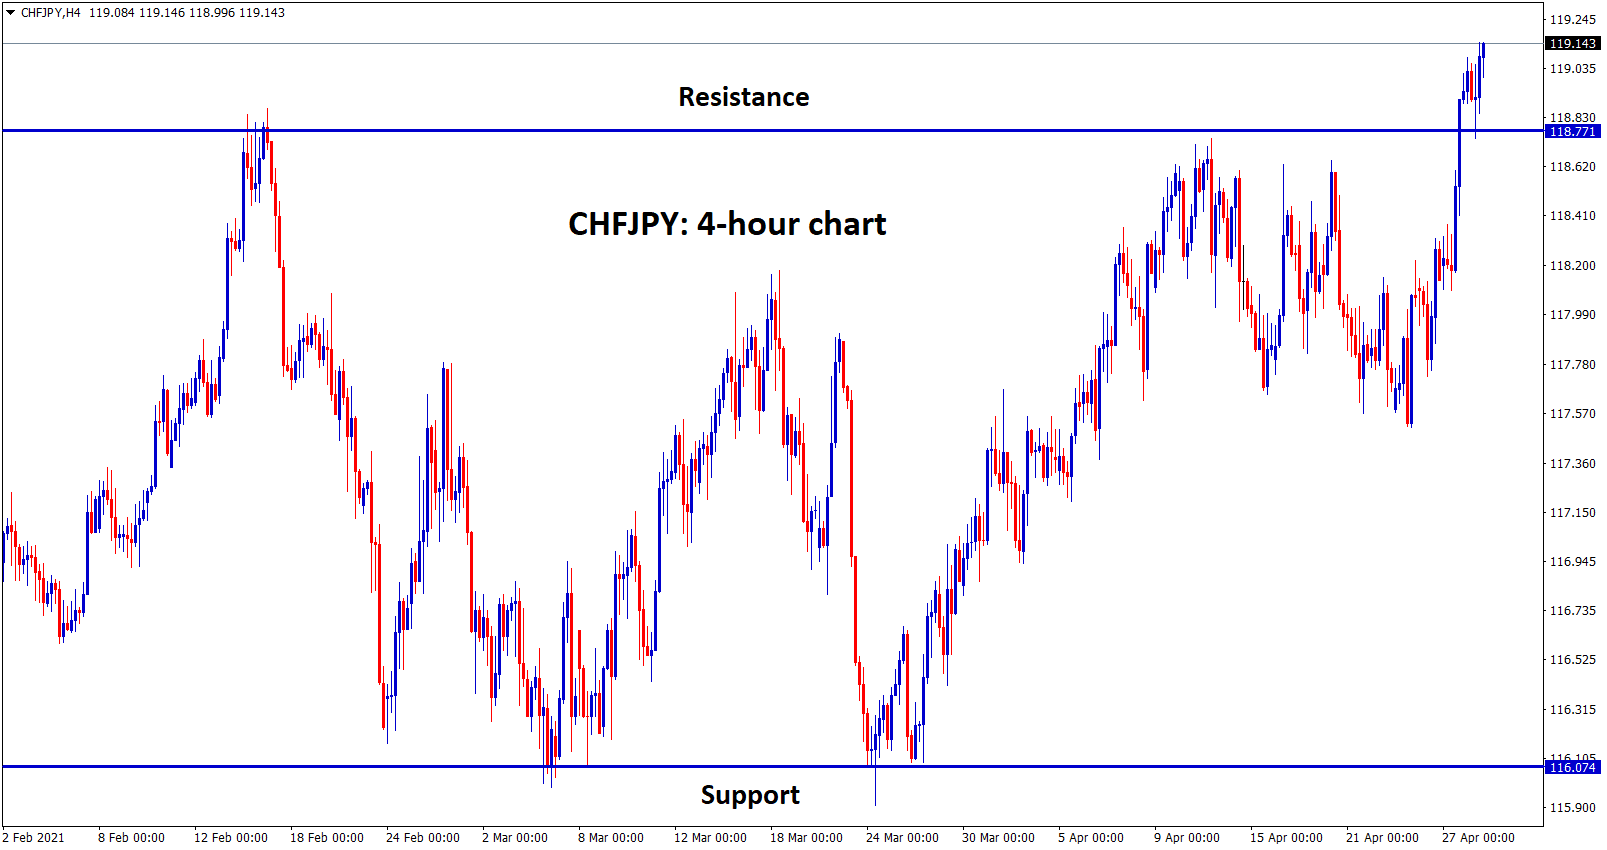 CHFJPY broken the resistance level after a long time